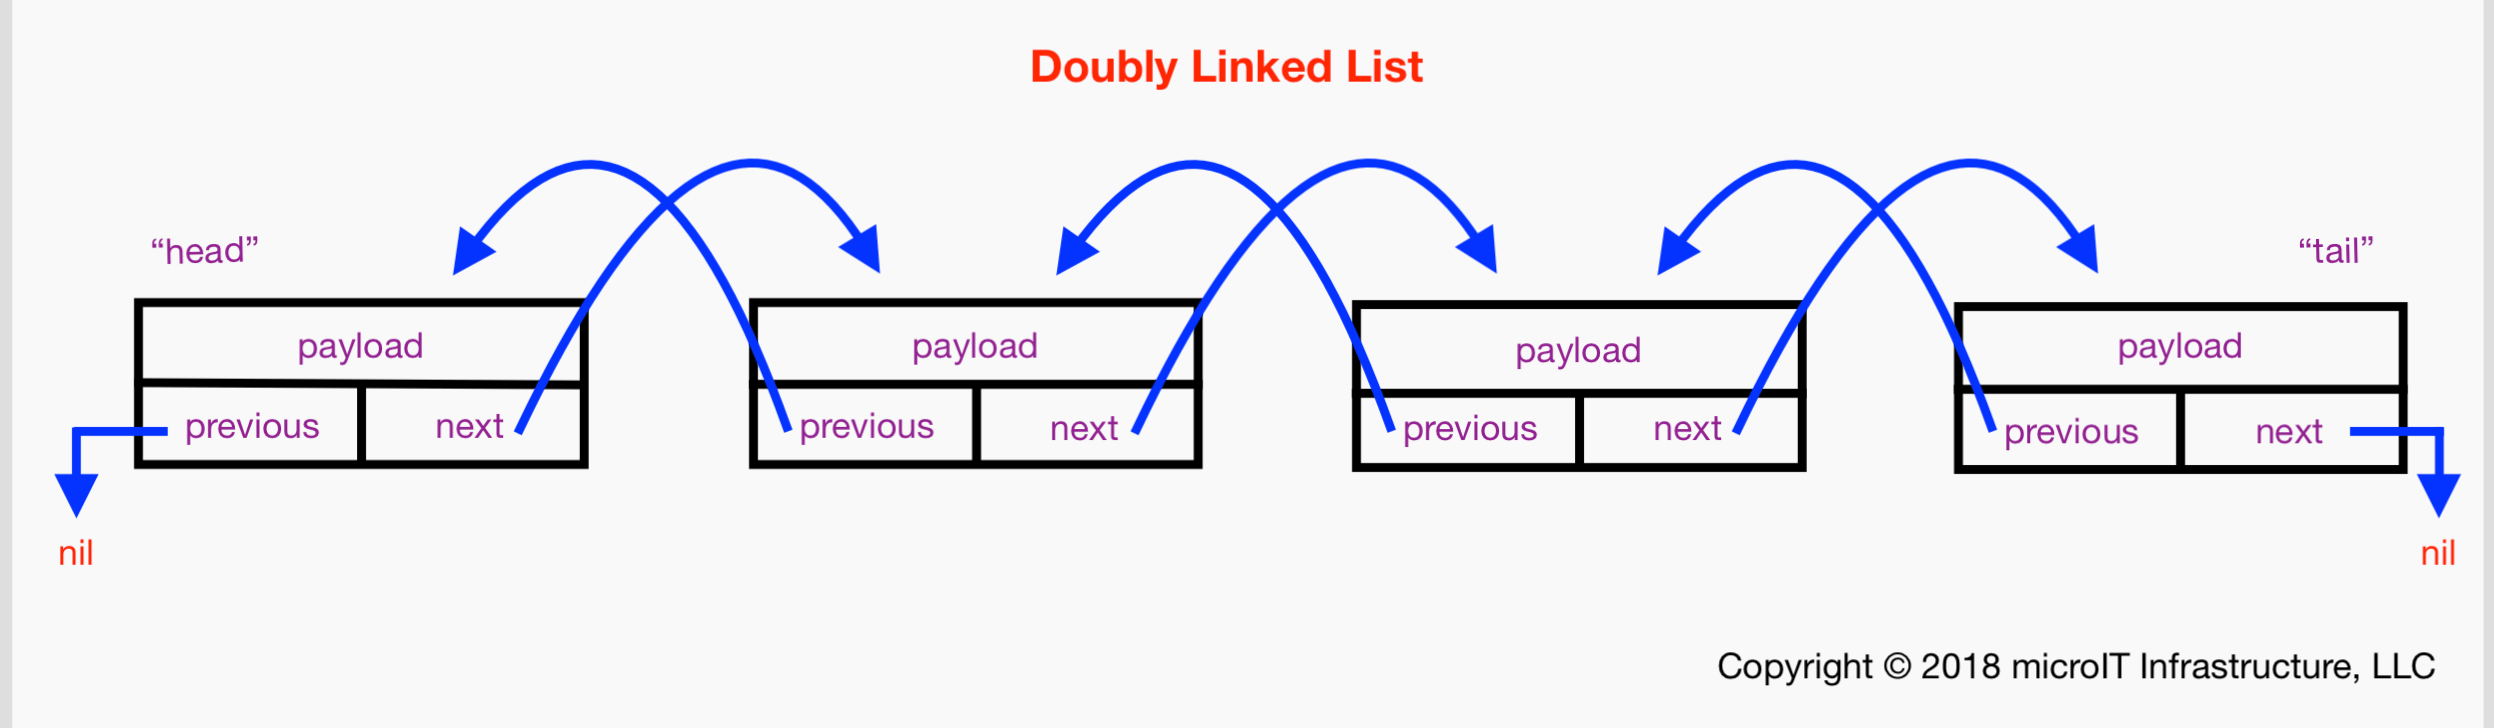 Implementing Doubly Linked List in Swift | Data Structure